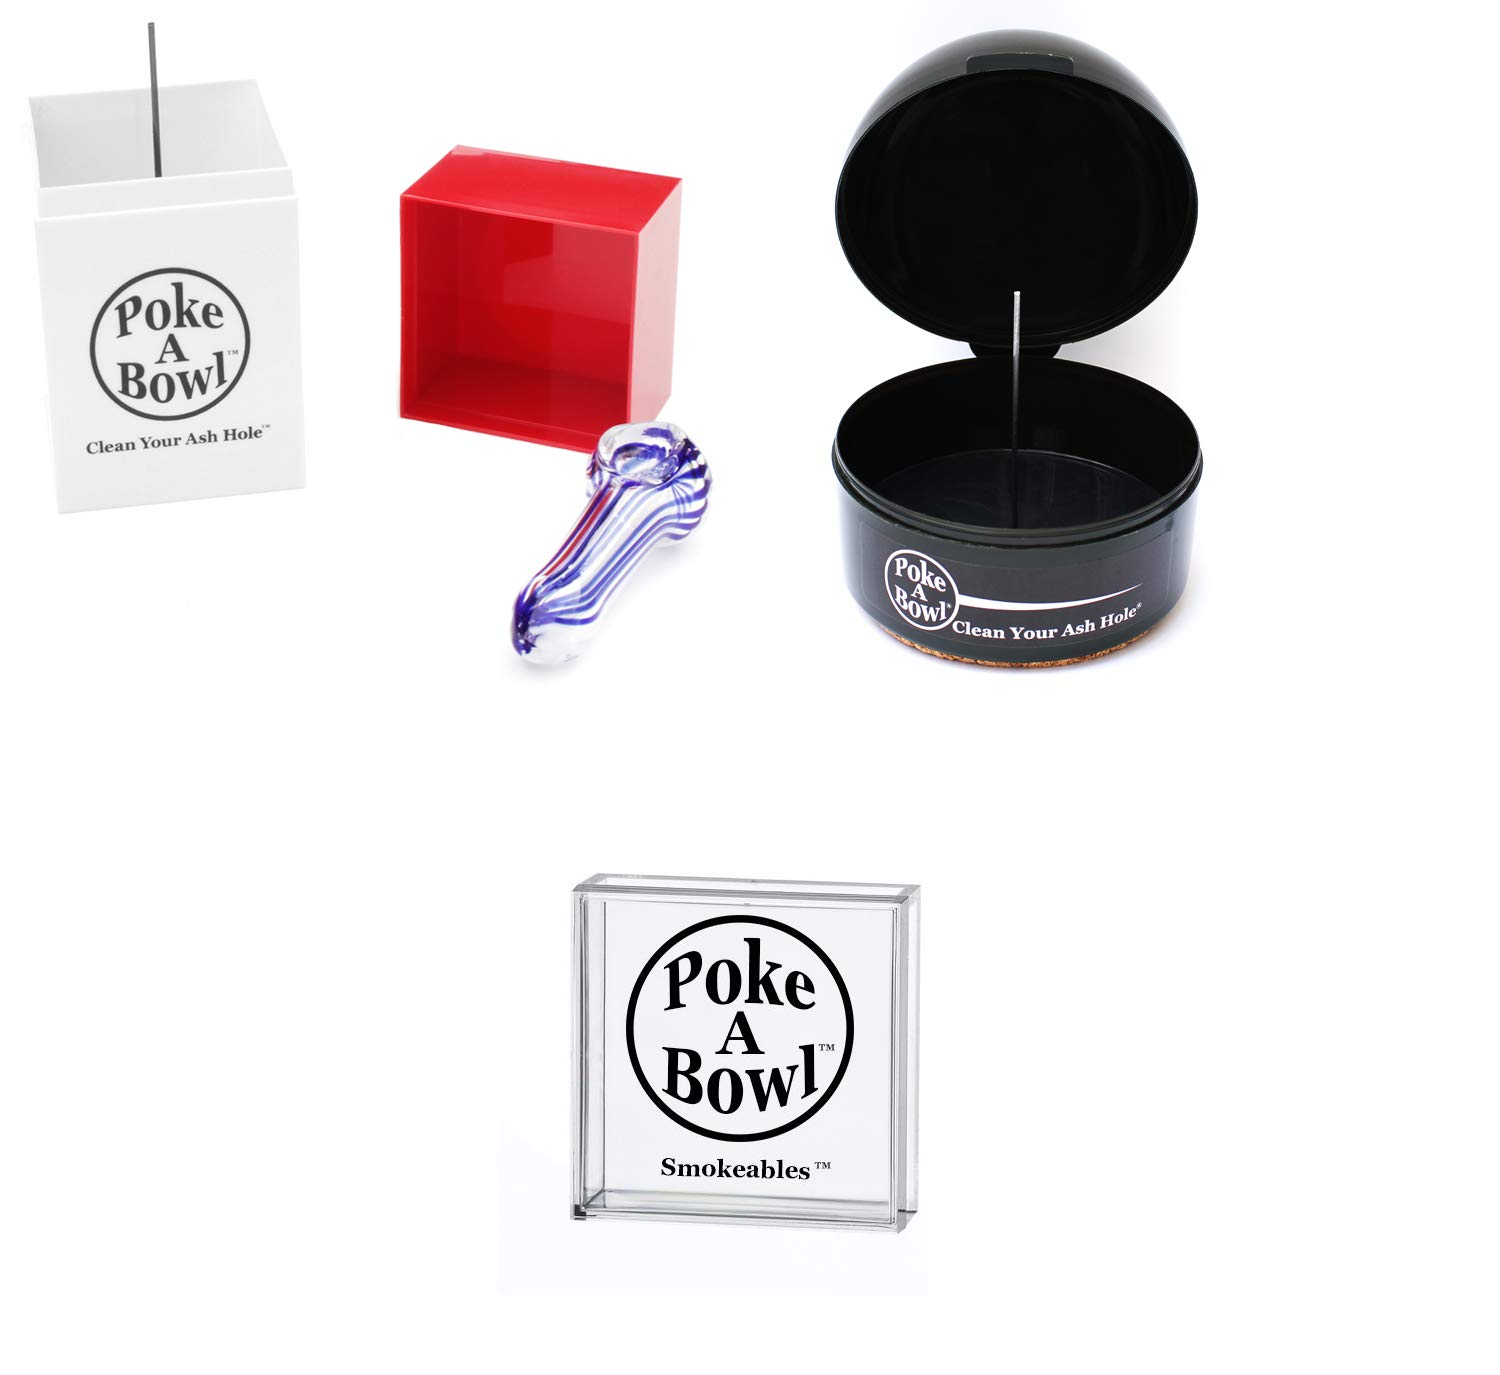 Poke A Bowl Ashtray - Clean Your Ash Hole; The Only Odor Proof, Heat Resistant, Pet-Friendly, Ash & Resin Removing Dynamic Duo Gift Set Ashtray with A Lid (Snow White) DPM Inc. PABDDGSW